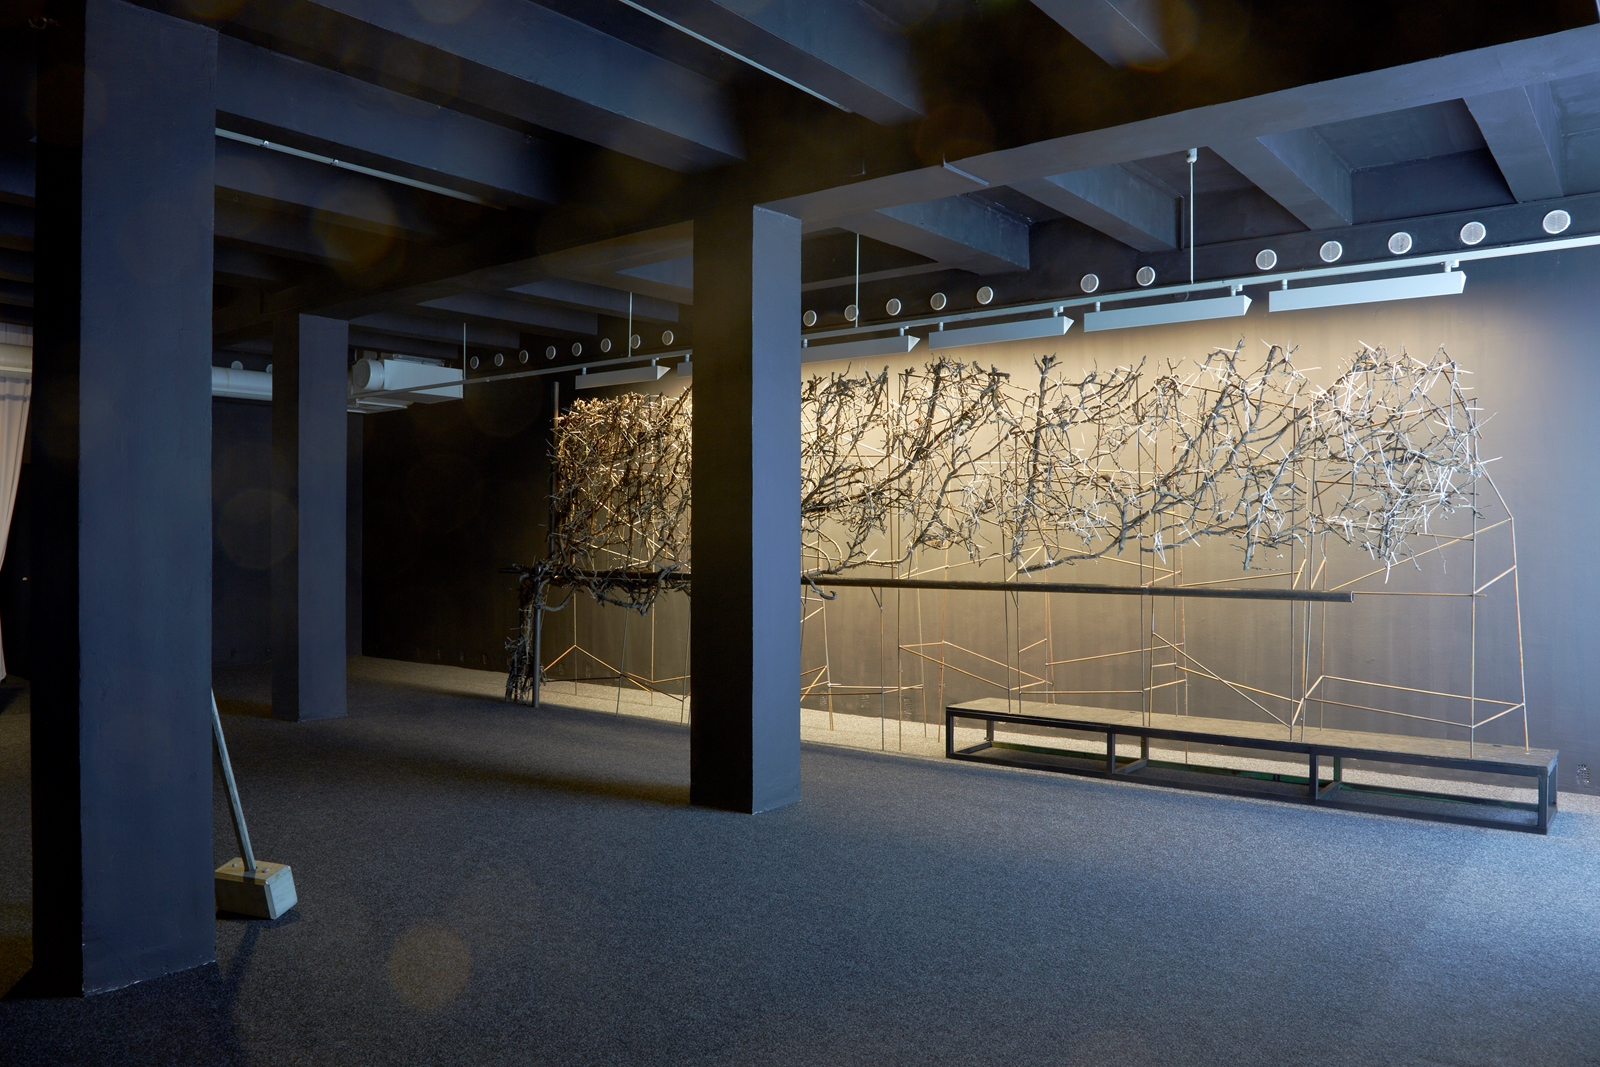 Finding 2014, ivy, reinforcing bar, metal, 713 x 285 x 70 cm, in Diorama, Trafó Gallery Budapest (H)